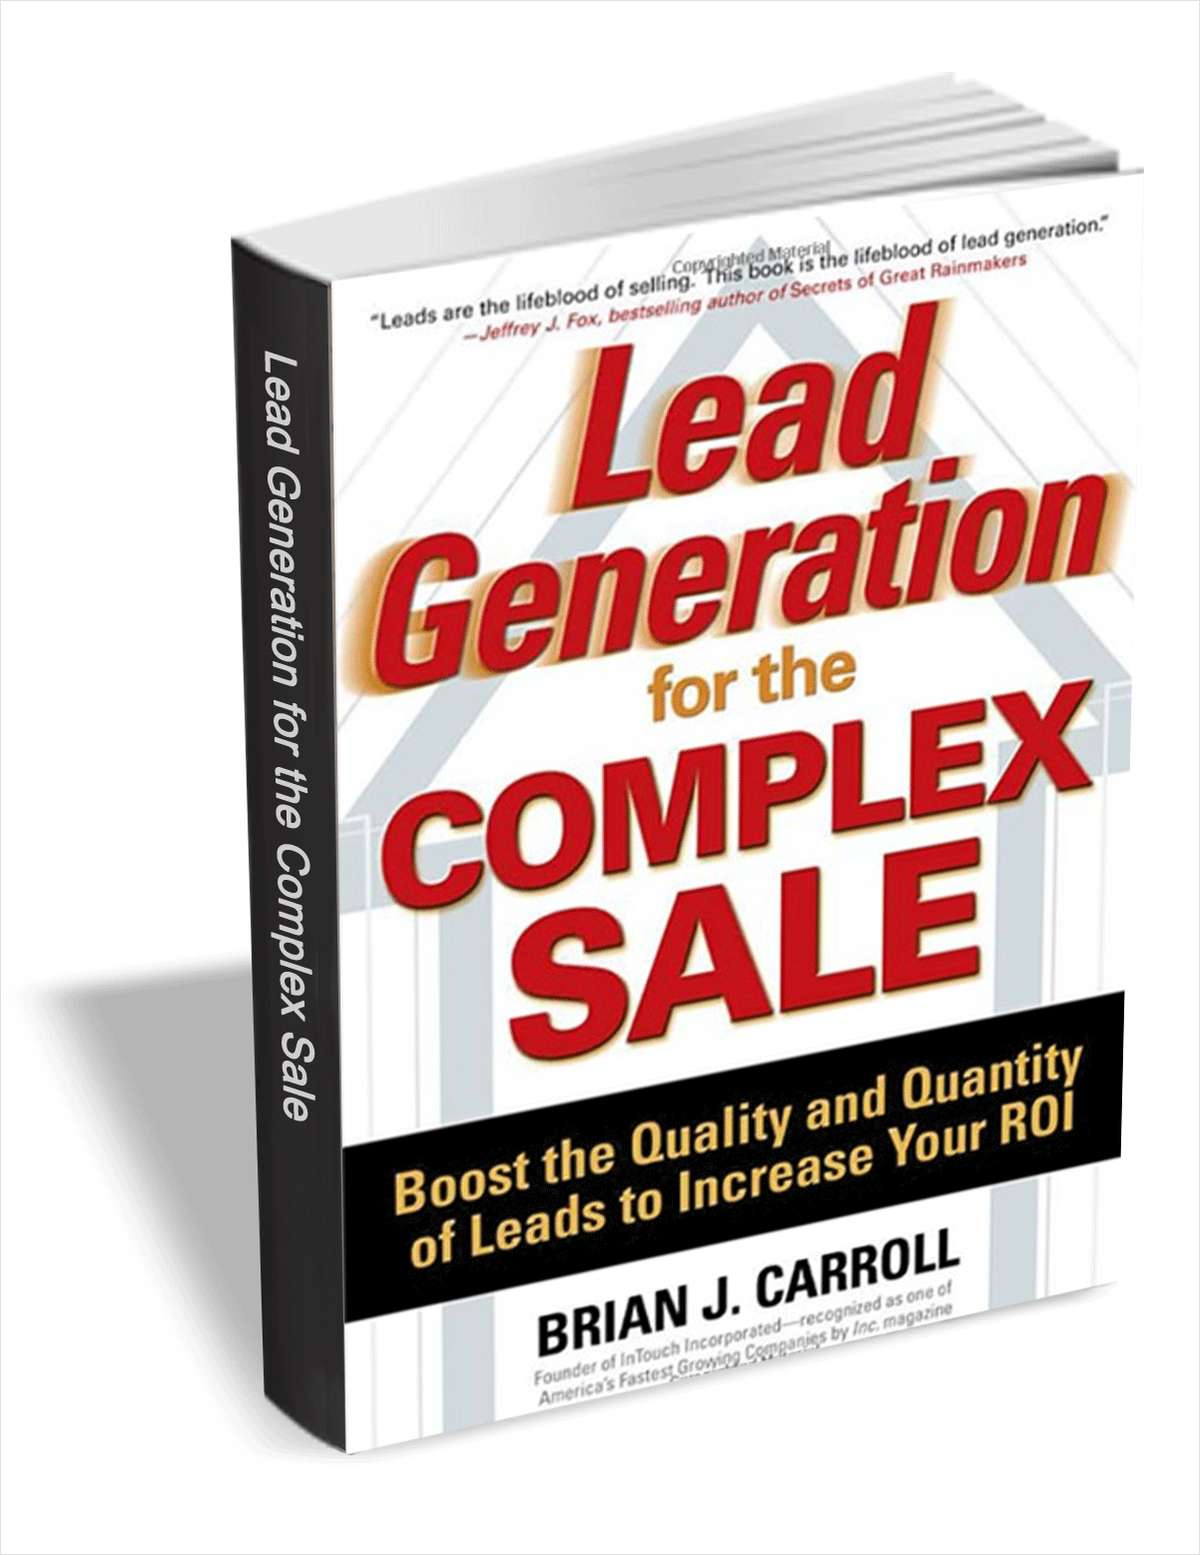 Lead Generation for the Complex Sale - Chapter 3